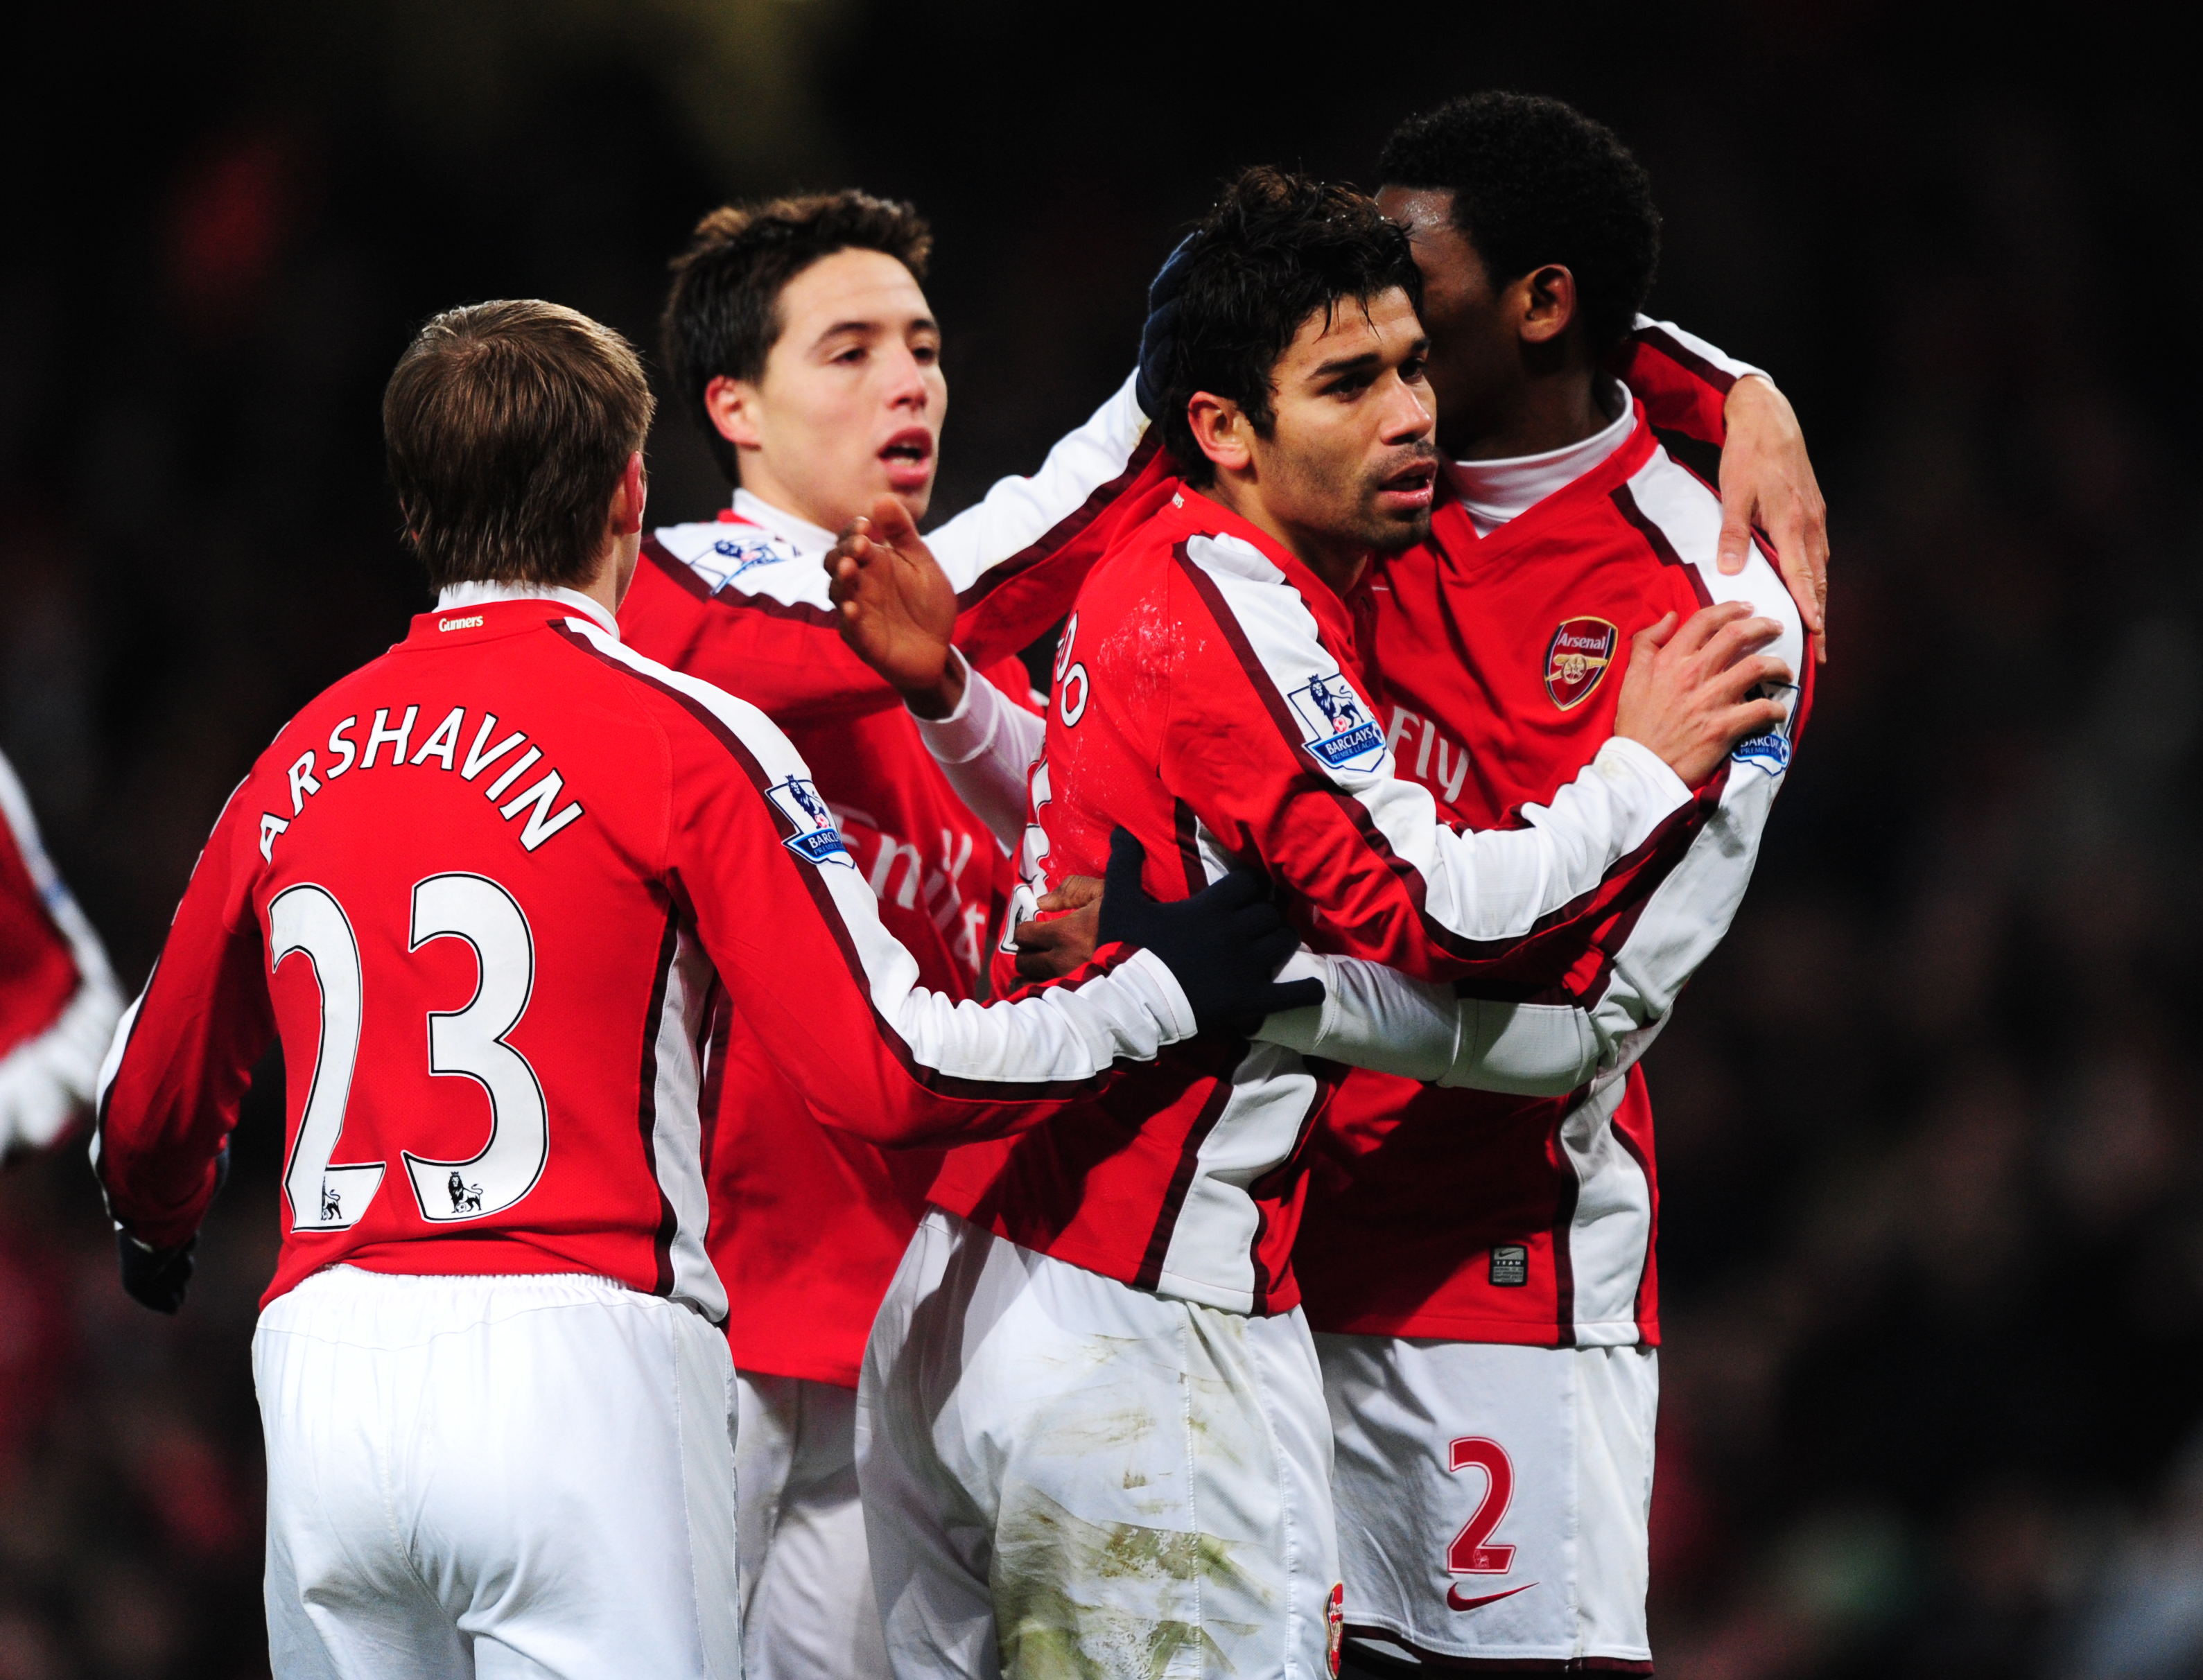 LONDON, ENGLAND - DECEMBER 19:  Eduardo of Arsenal is congratulated by team mates after scoring the second goal of the game during the Barclays Premier League match between Arsenal and Hull City at the Emirates Stadium on December 19, 2009 in London, England.  (Photo by Mike Hewitt/Getty Images)